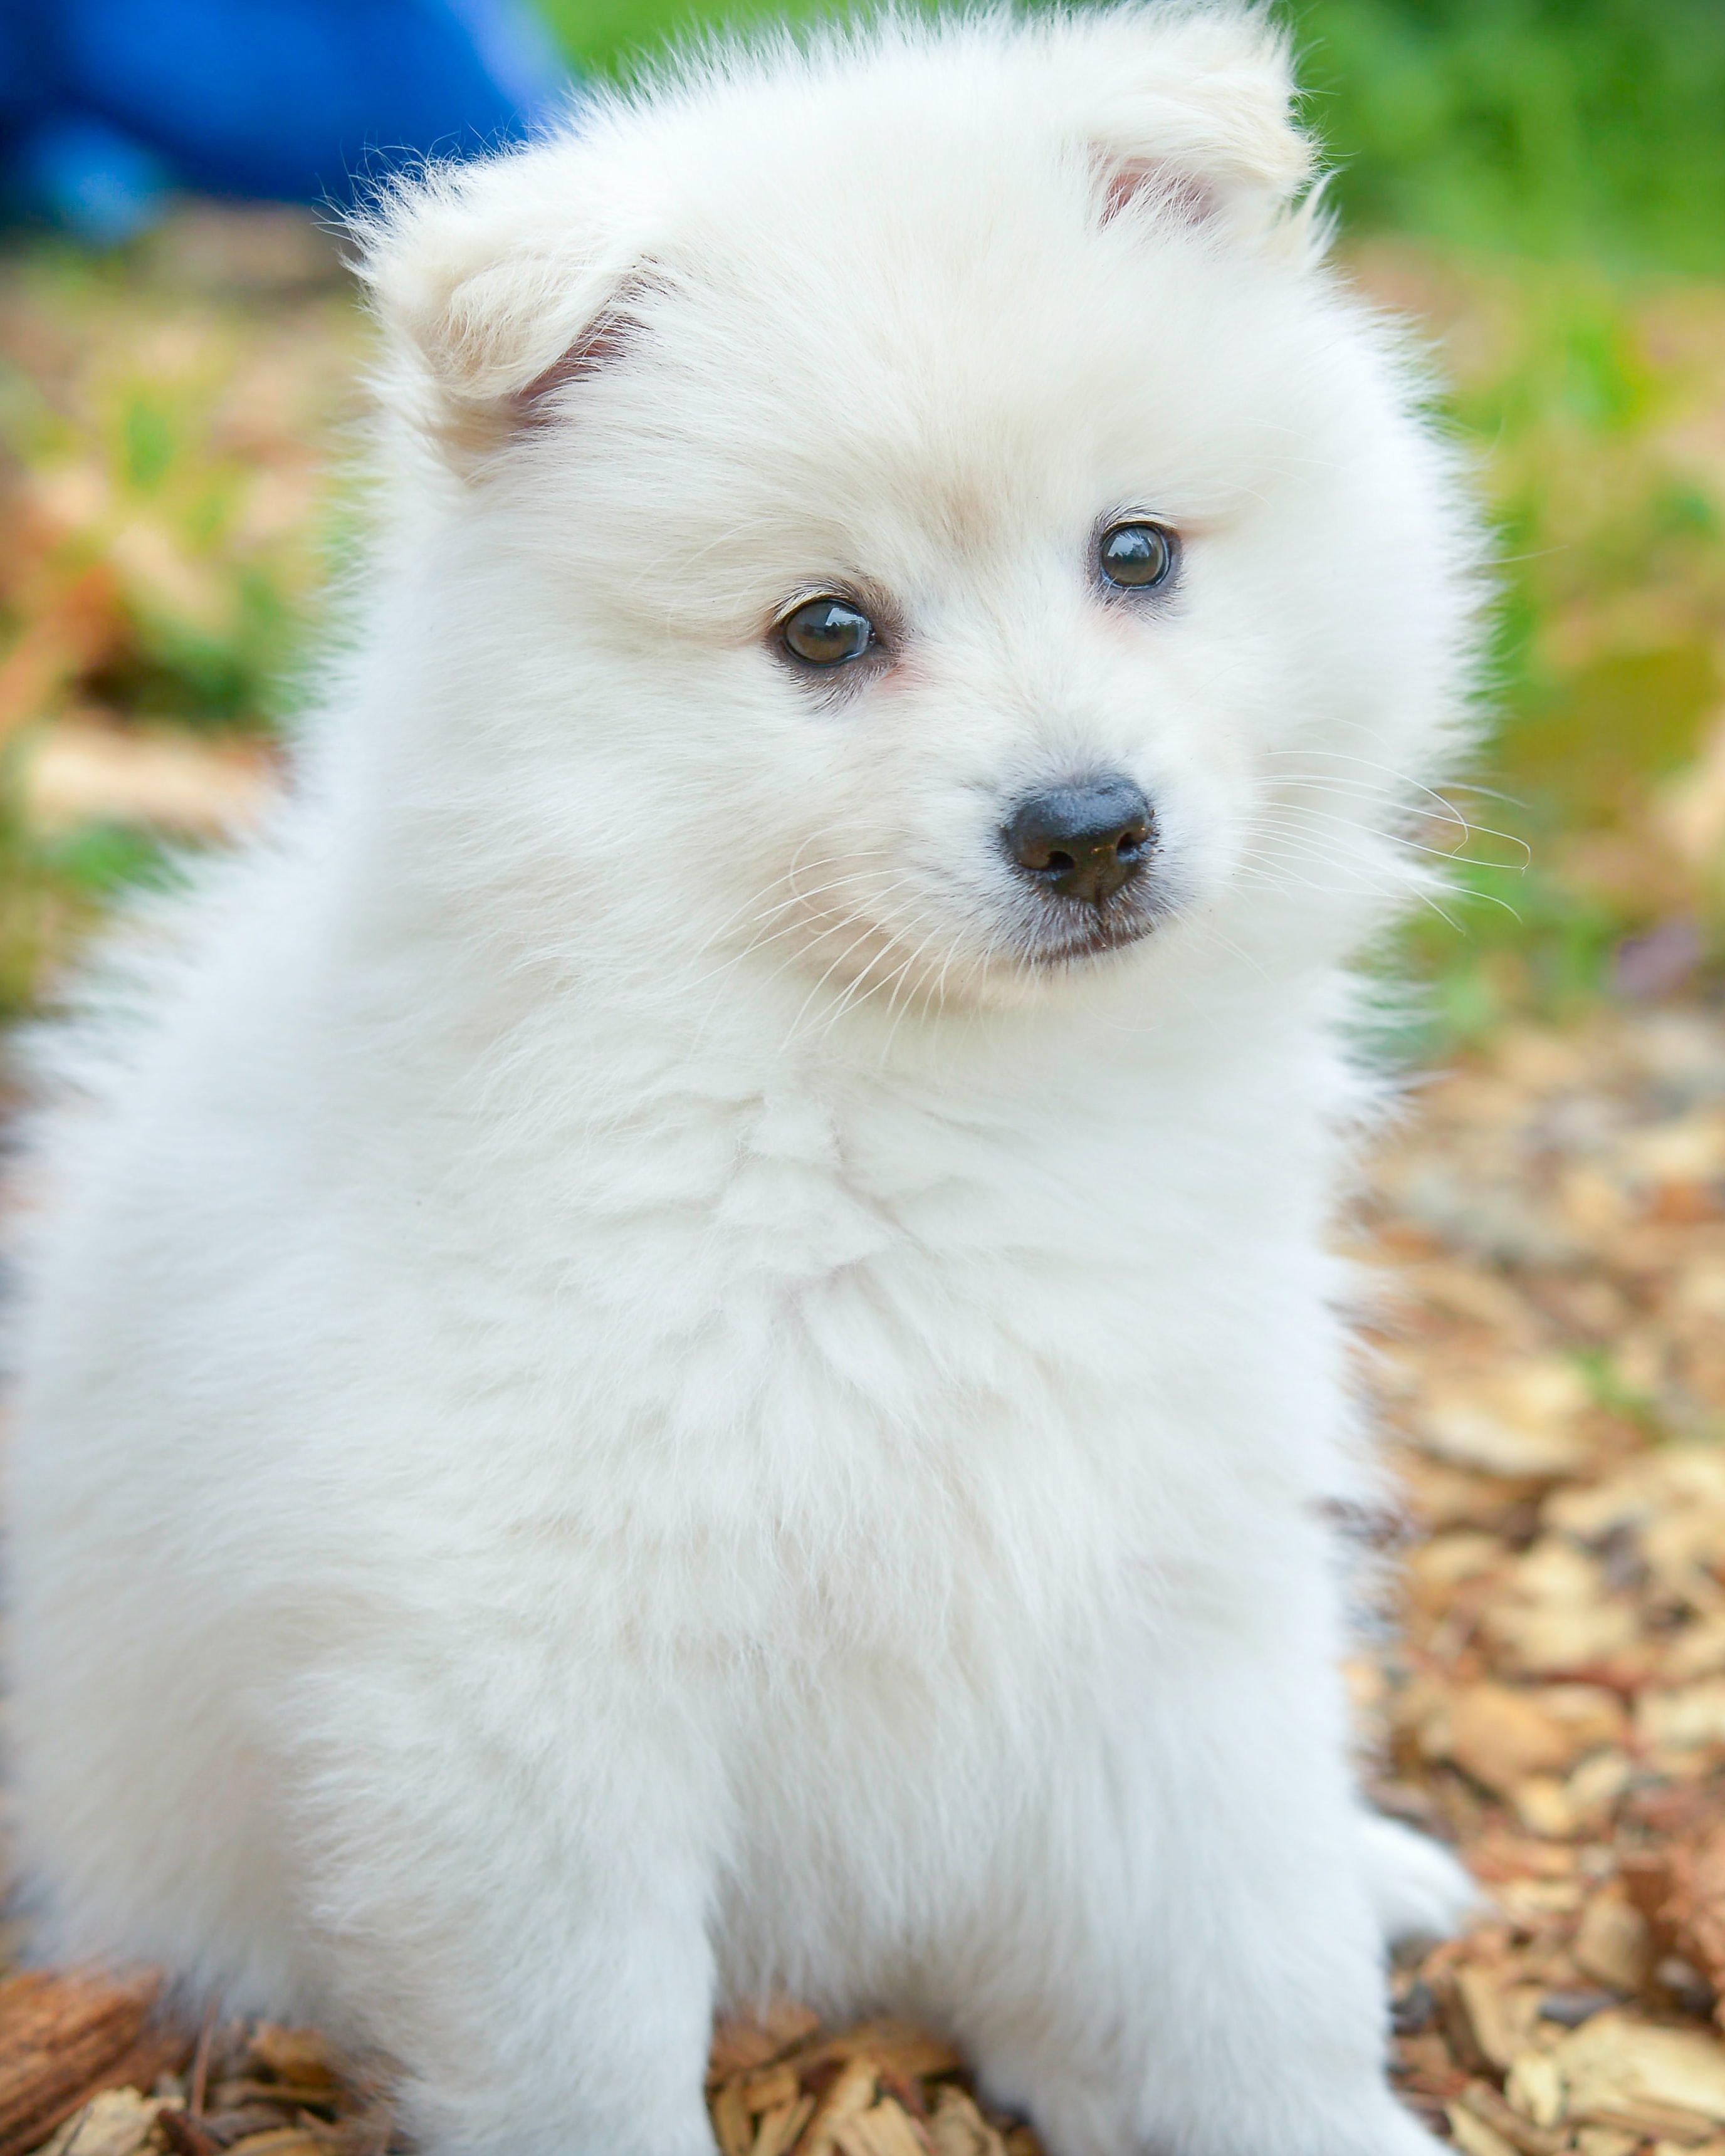 88067 download wallpaper Animals, Spitz, Dog, Nice, Sweetheart, Fluffy screensavers and pictures for free